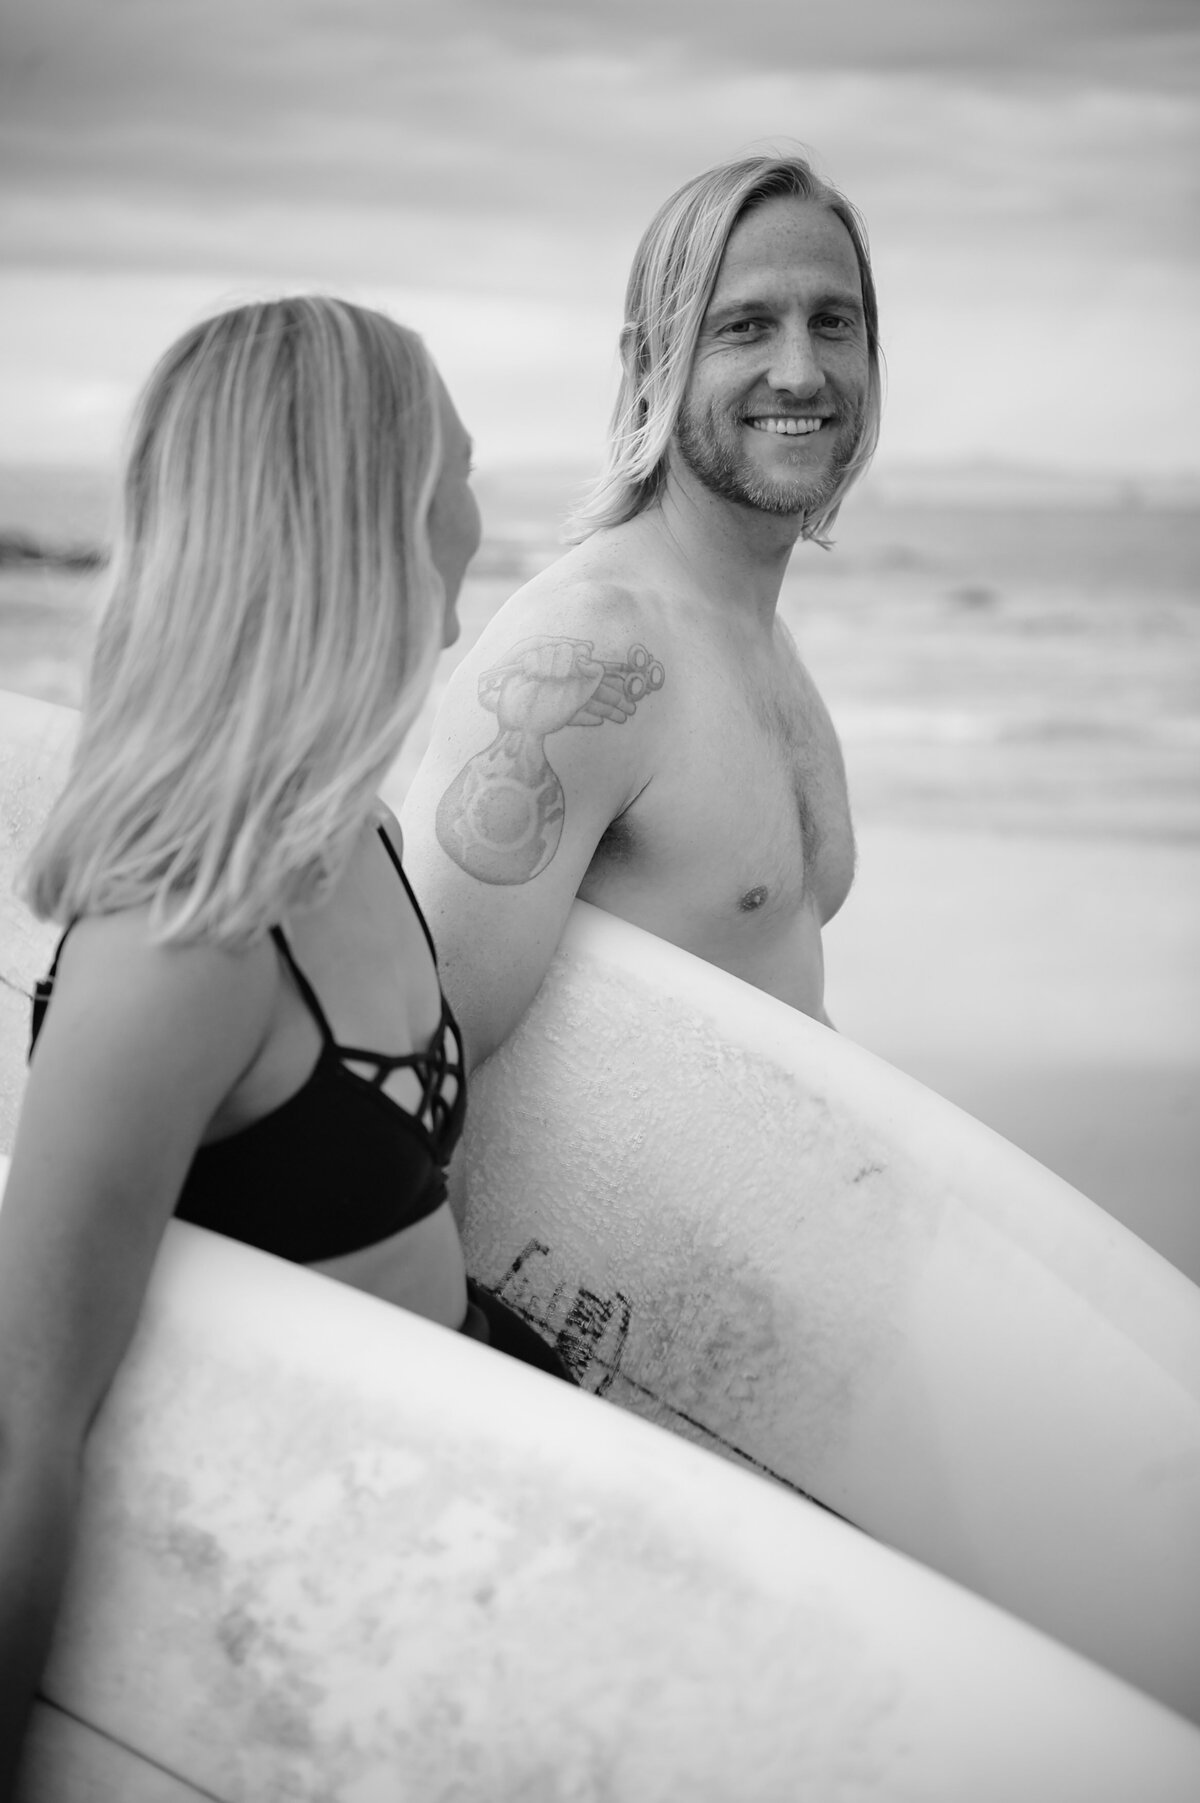 surfer-laughing-los-angeles